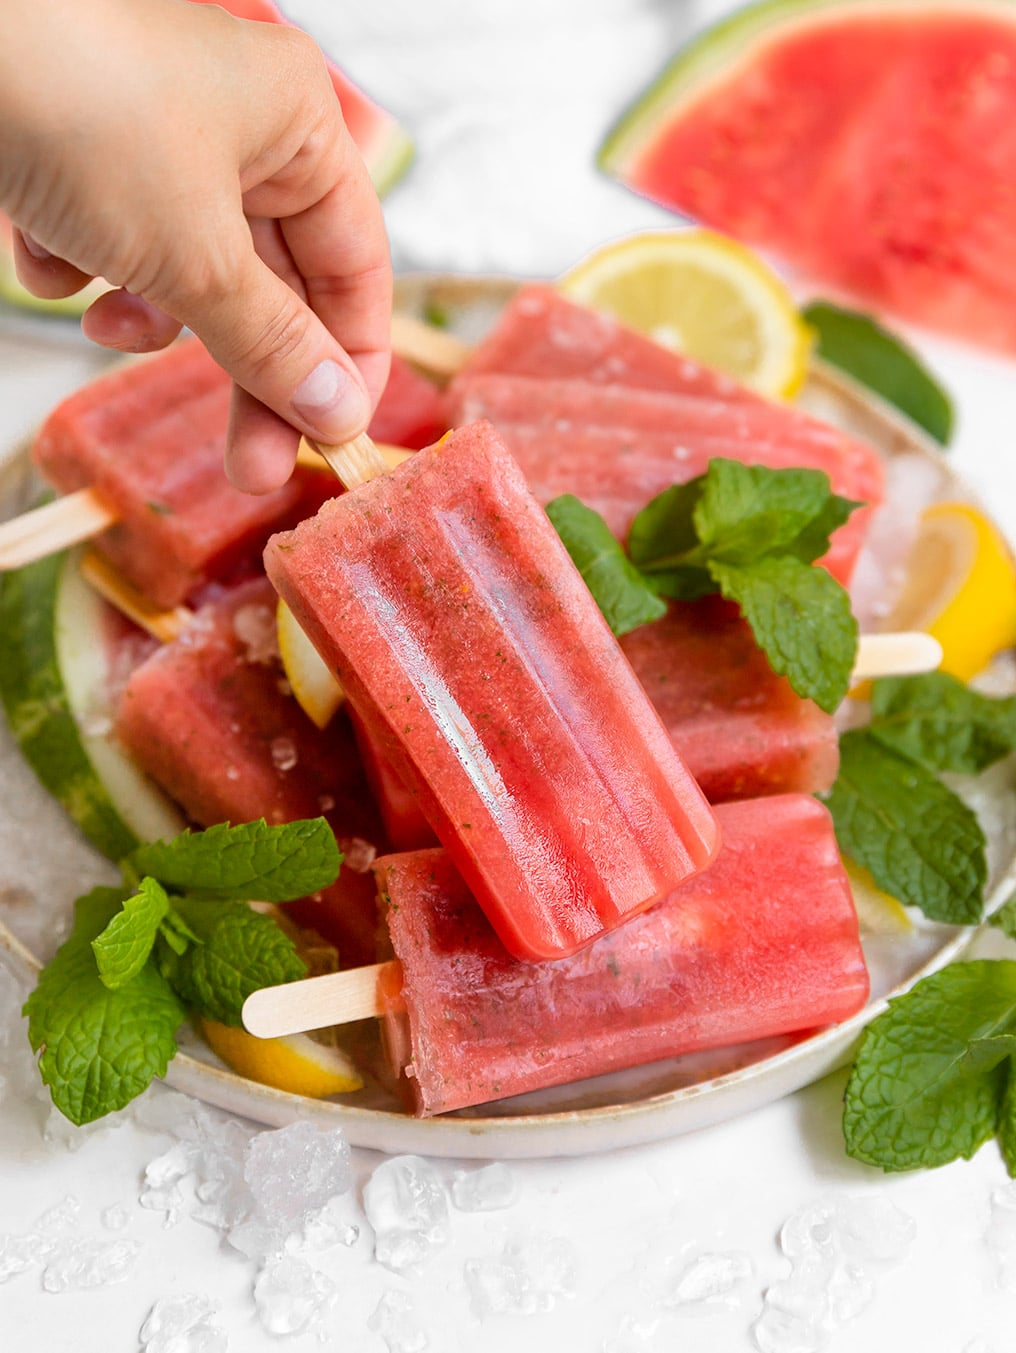 hand lifting a watermelon lemon mint popsicle from a plate filled with popsicles, fresh mint, and lemon slices